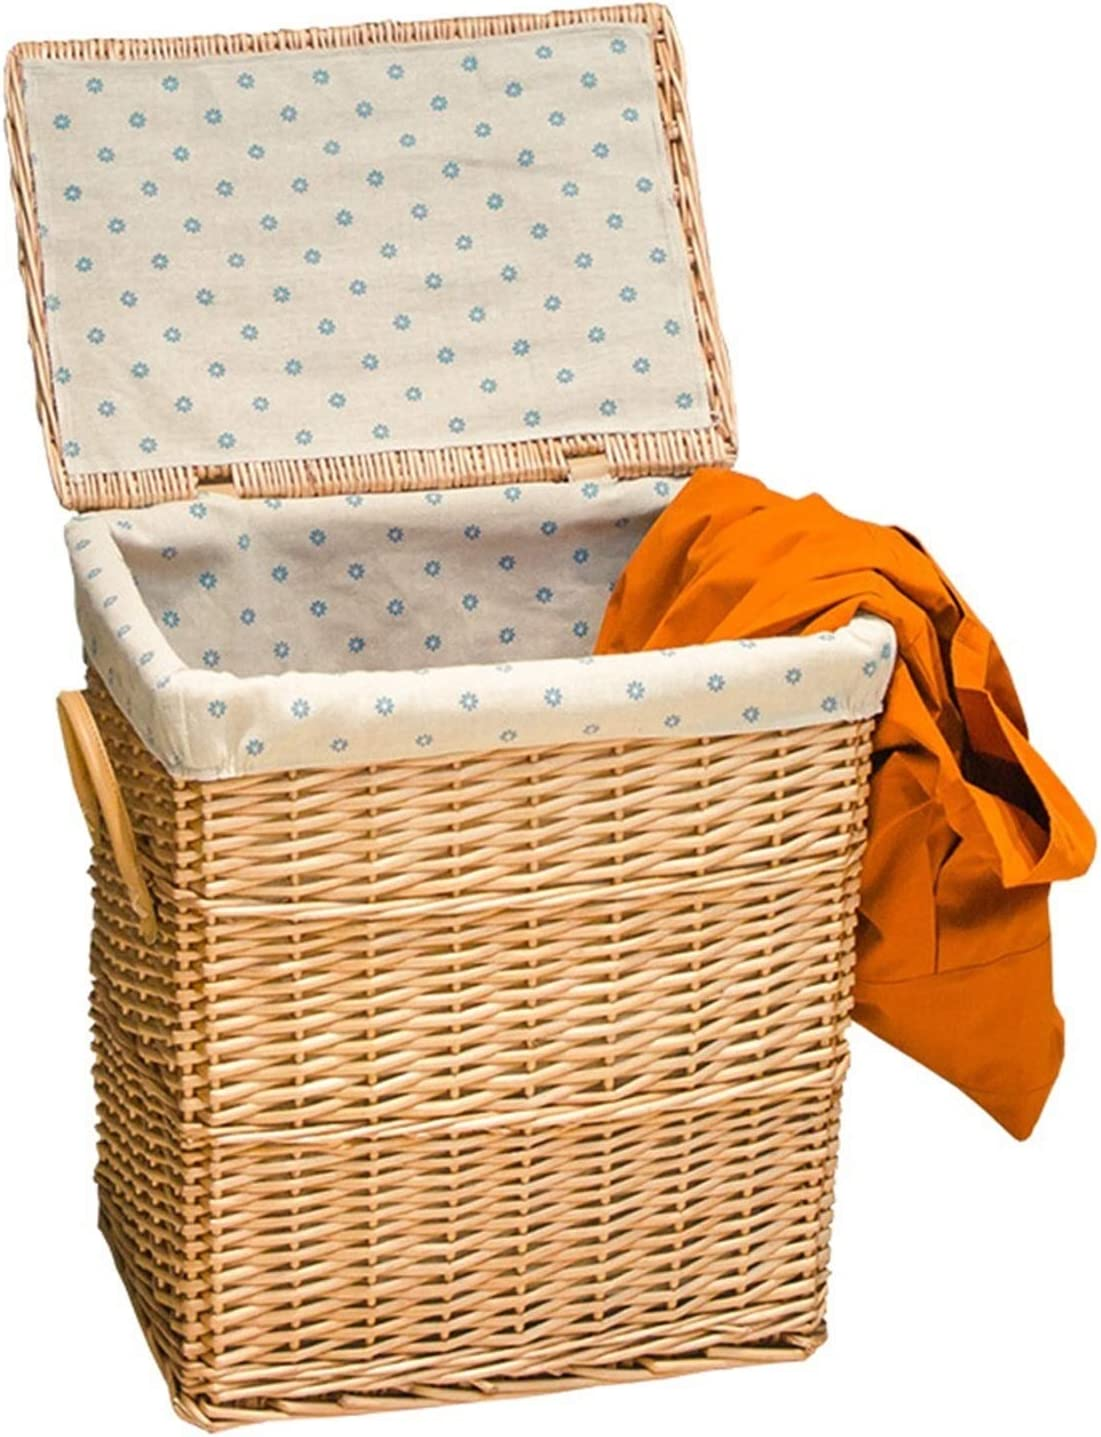 pot Lined Large-Capacity Phoenix Mall Rattan Covered Storage Basket Ranking TOP3